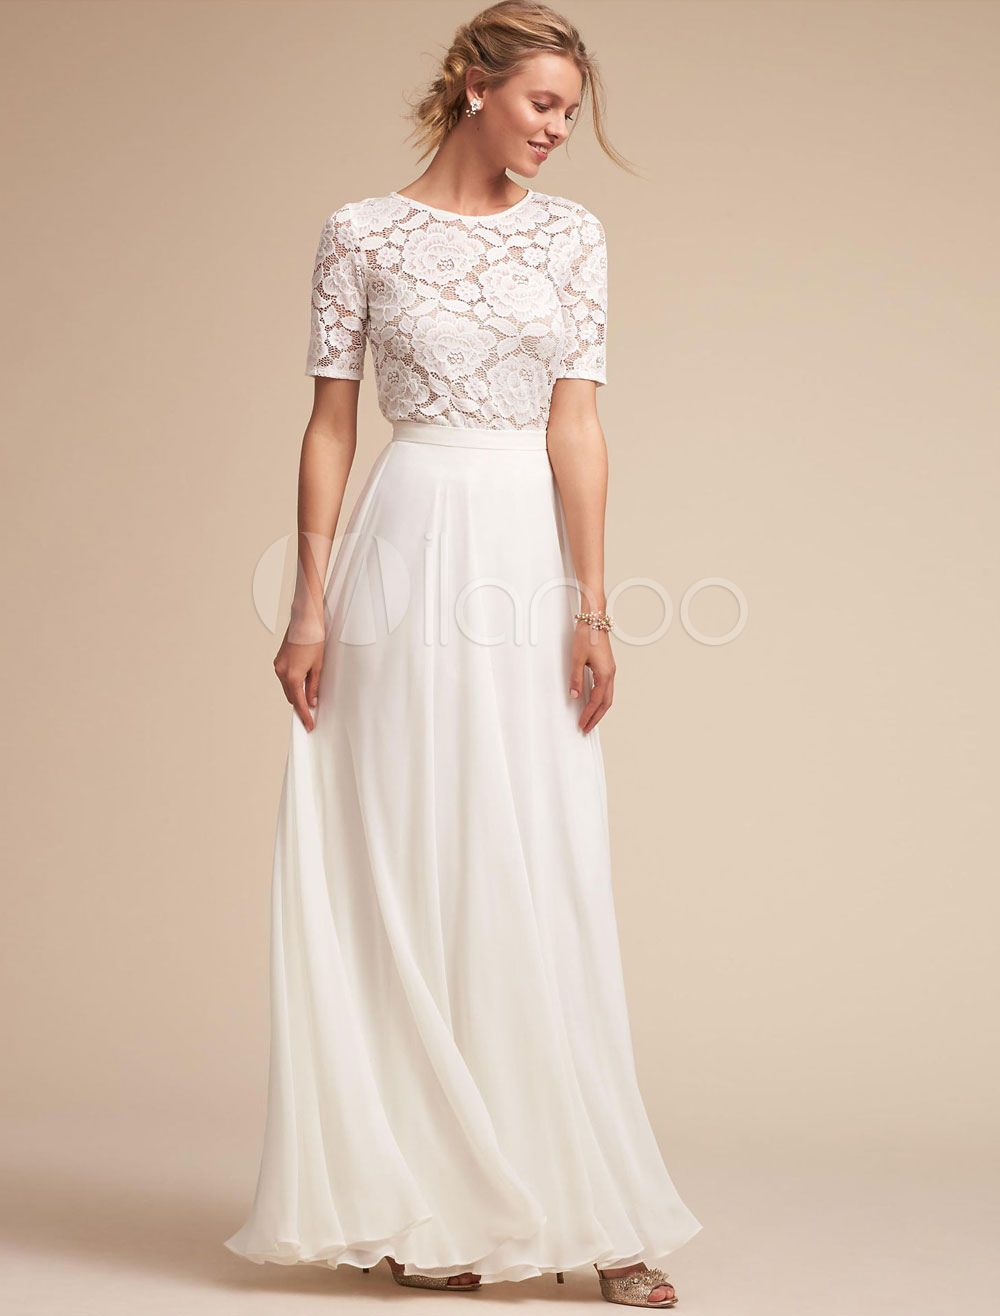 White long dress lace prom dress women chiffon short sleeve maxi